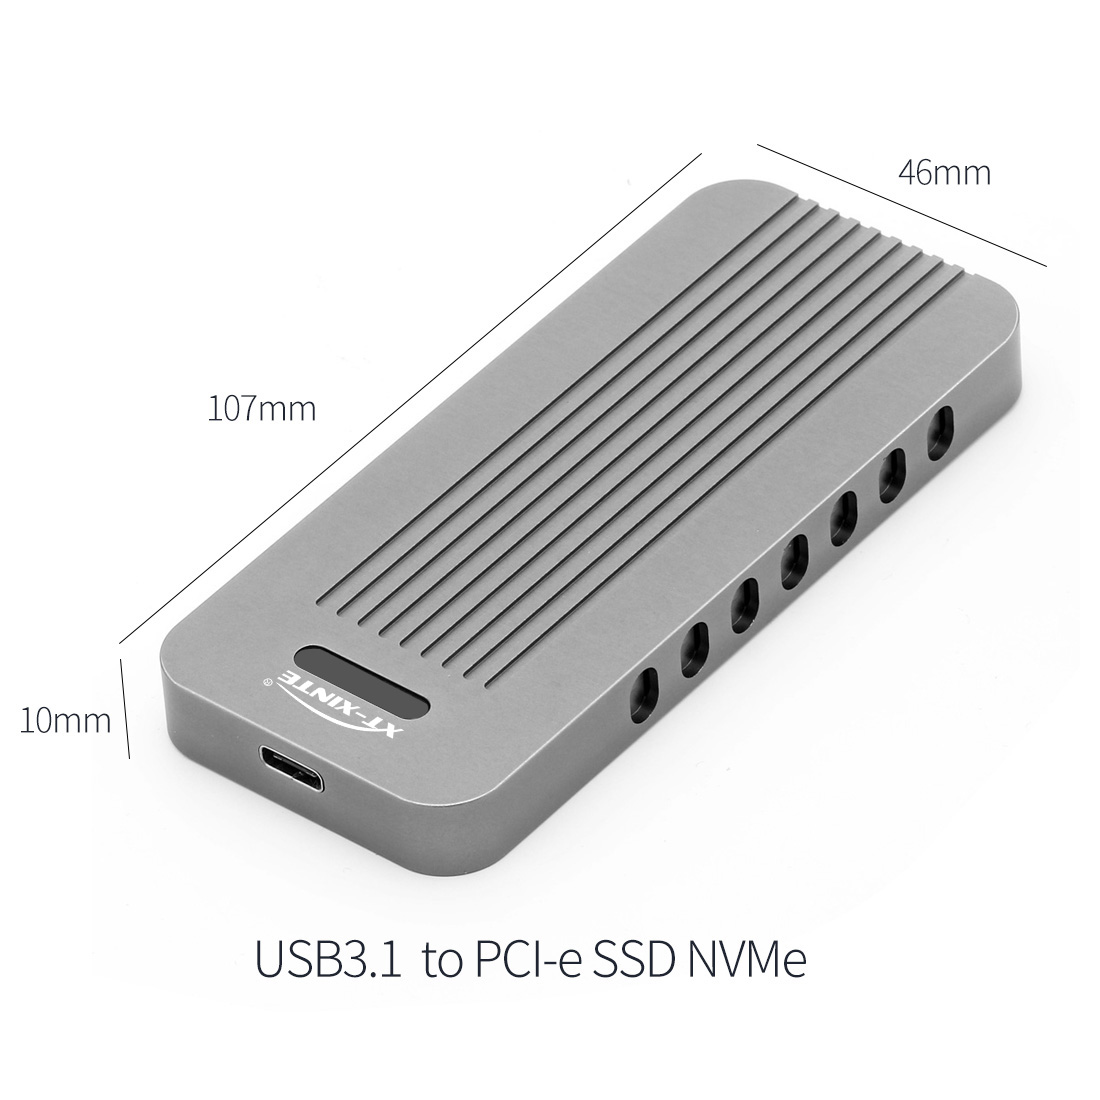 Metal External M.2 To 10Gbps USB 3.1 Type C NVMe PCIe 3.0 SSD Enclosure Case M Key NGFF USB3.1 HDD Box C To C Cable Adapter